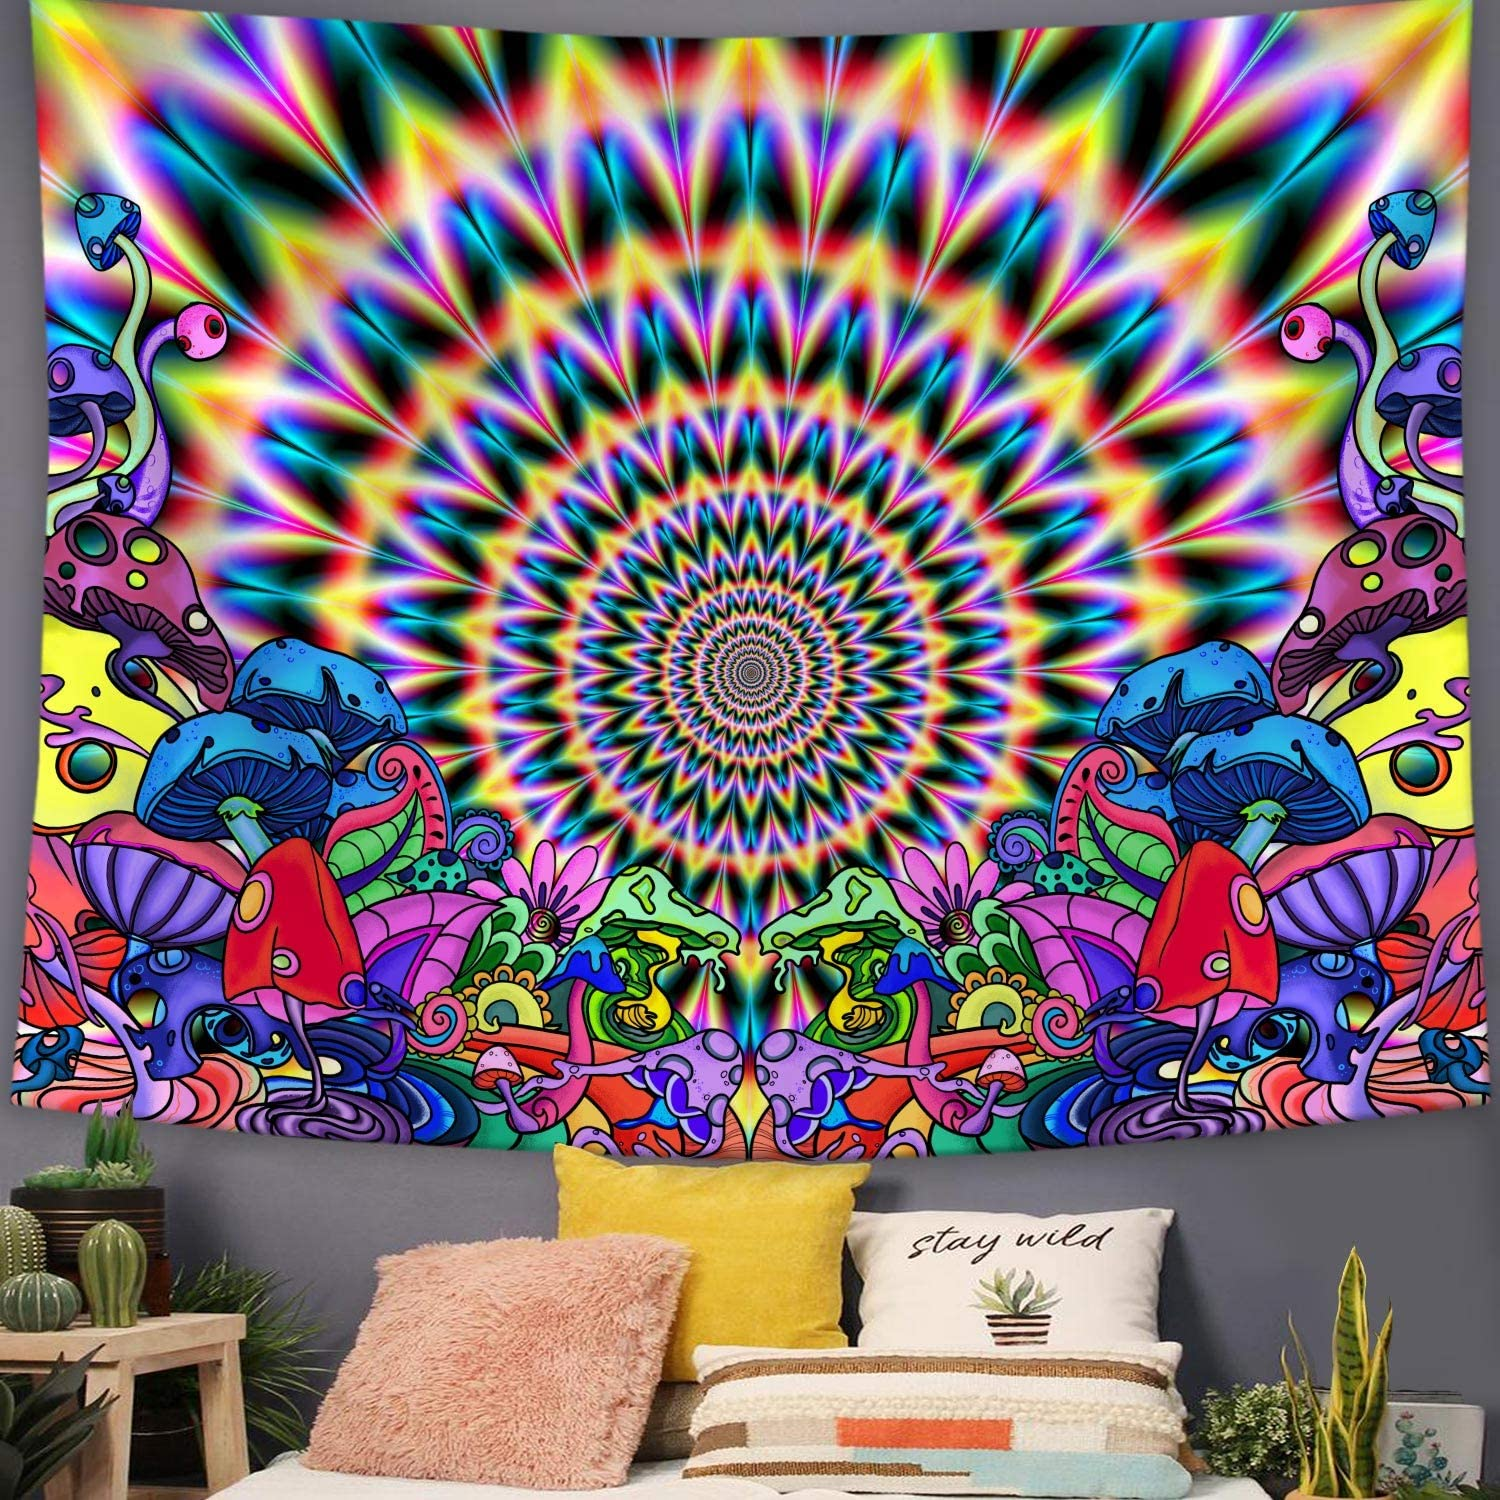 Lifeel Psychedelic Nippon regular agency Tapestry Abstract Tapestries Trippy Mushroom Some reservation